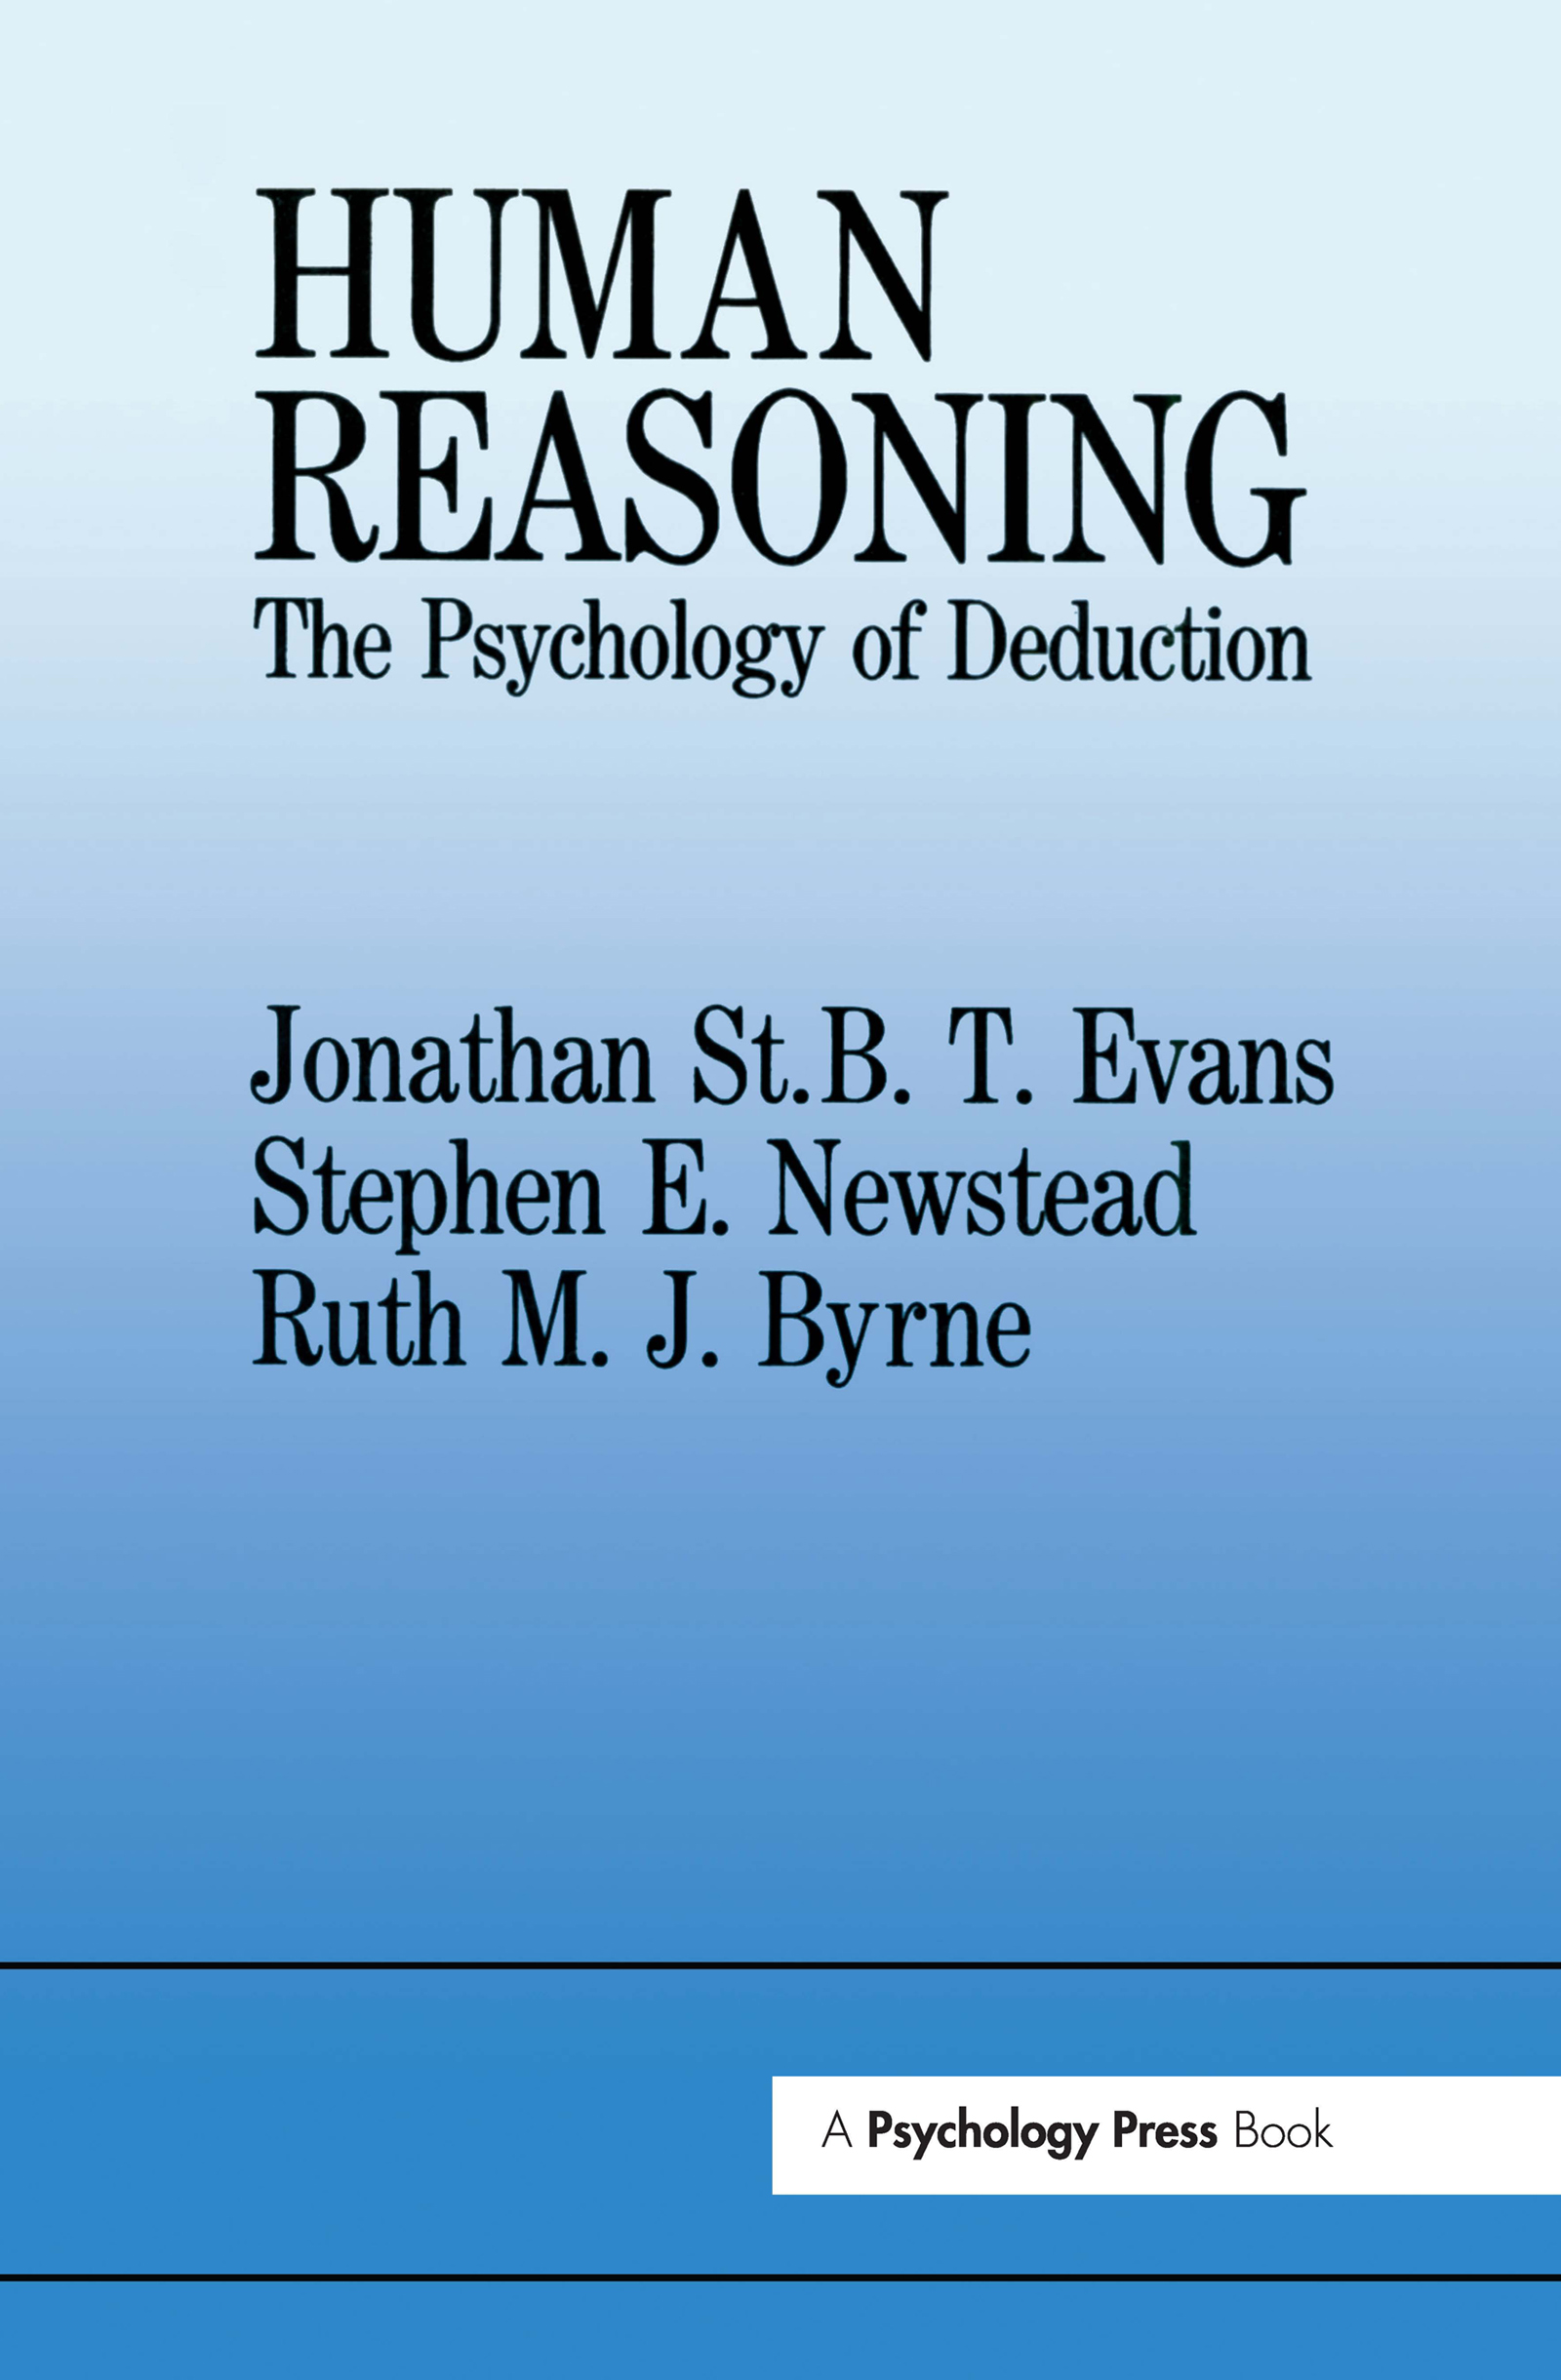 Human Reasoning: The Psychology Of Deduction book cover